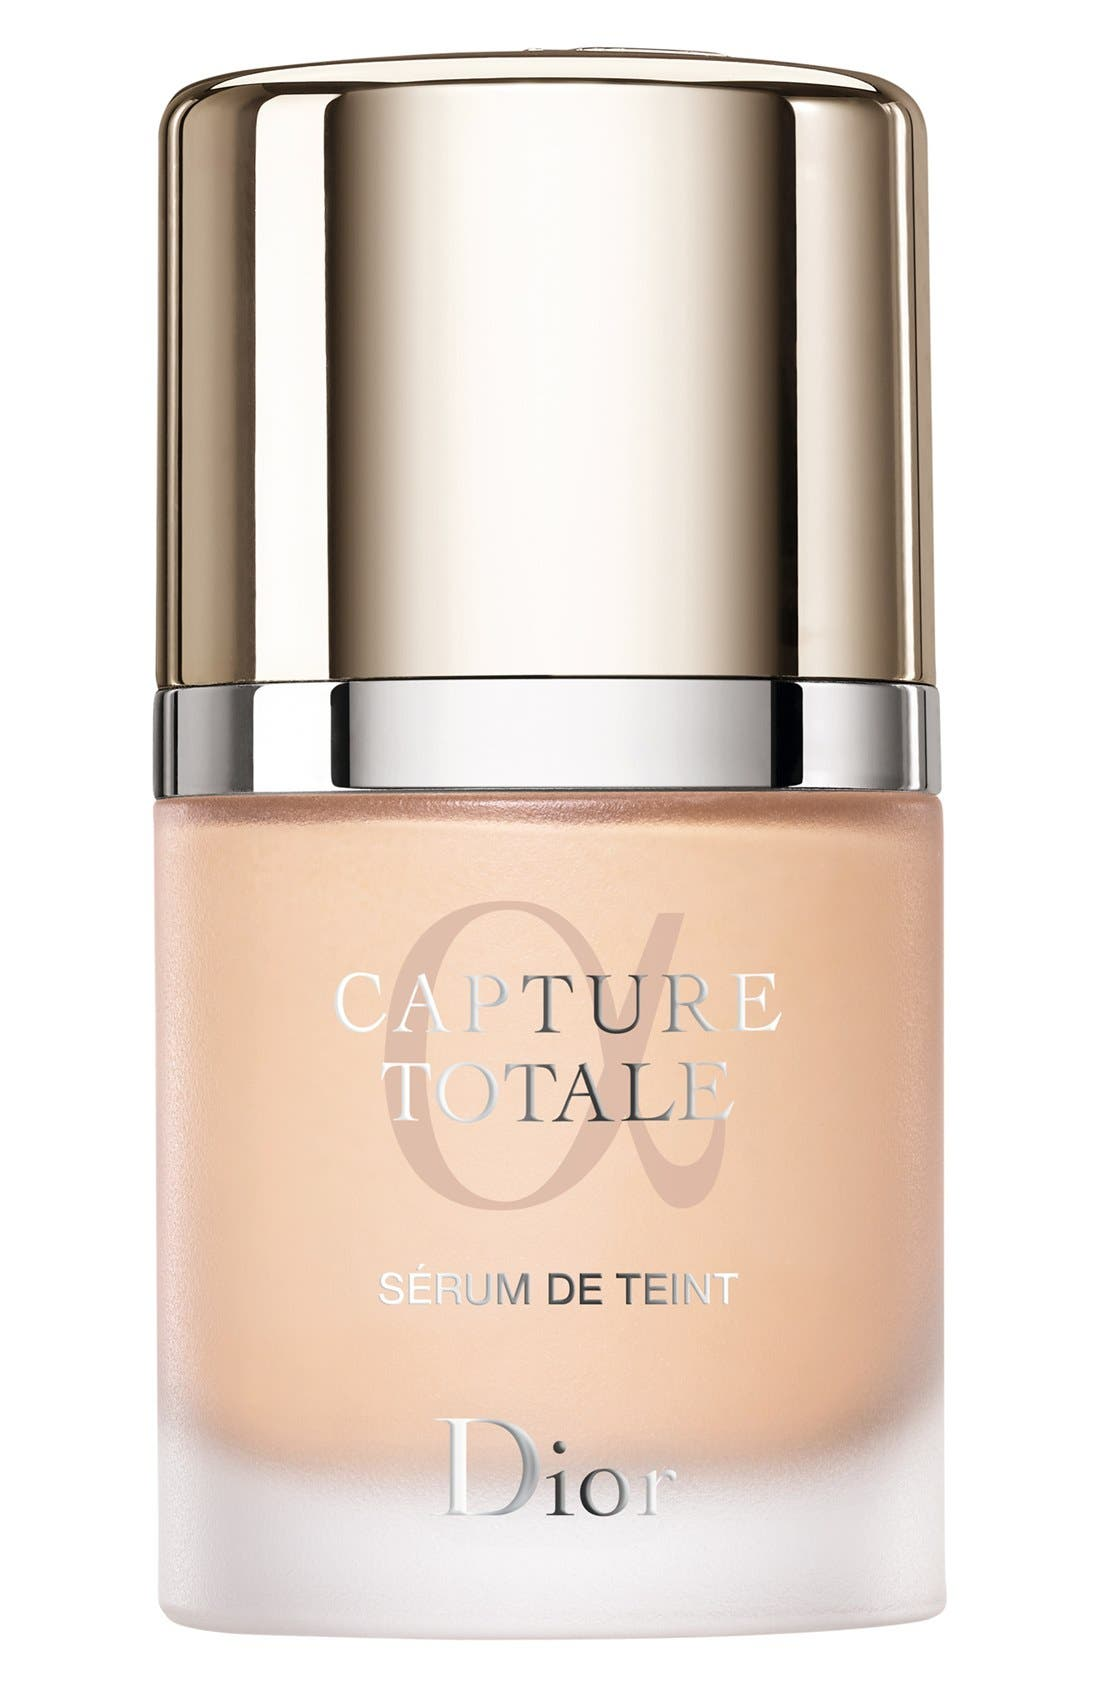 Capture Totale Foundation SPF 25,                             Main thumbnail 1, color,                             010 IVORY